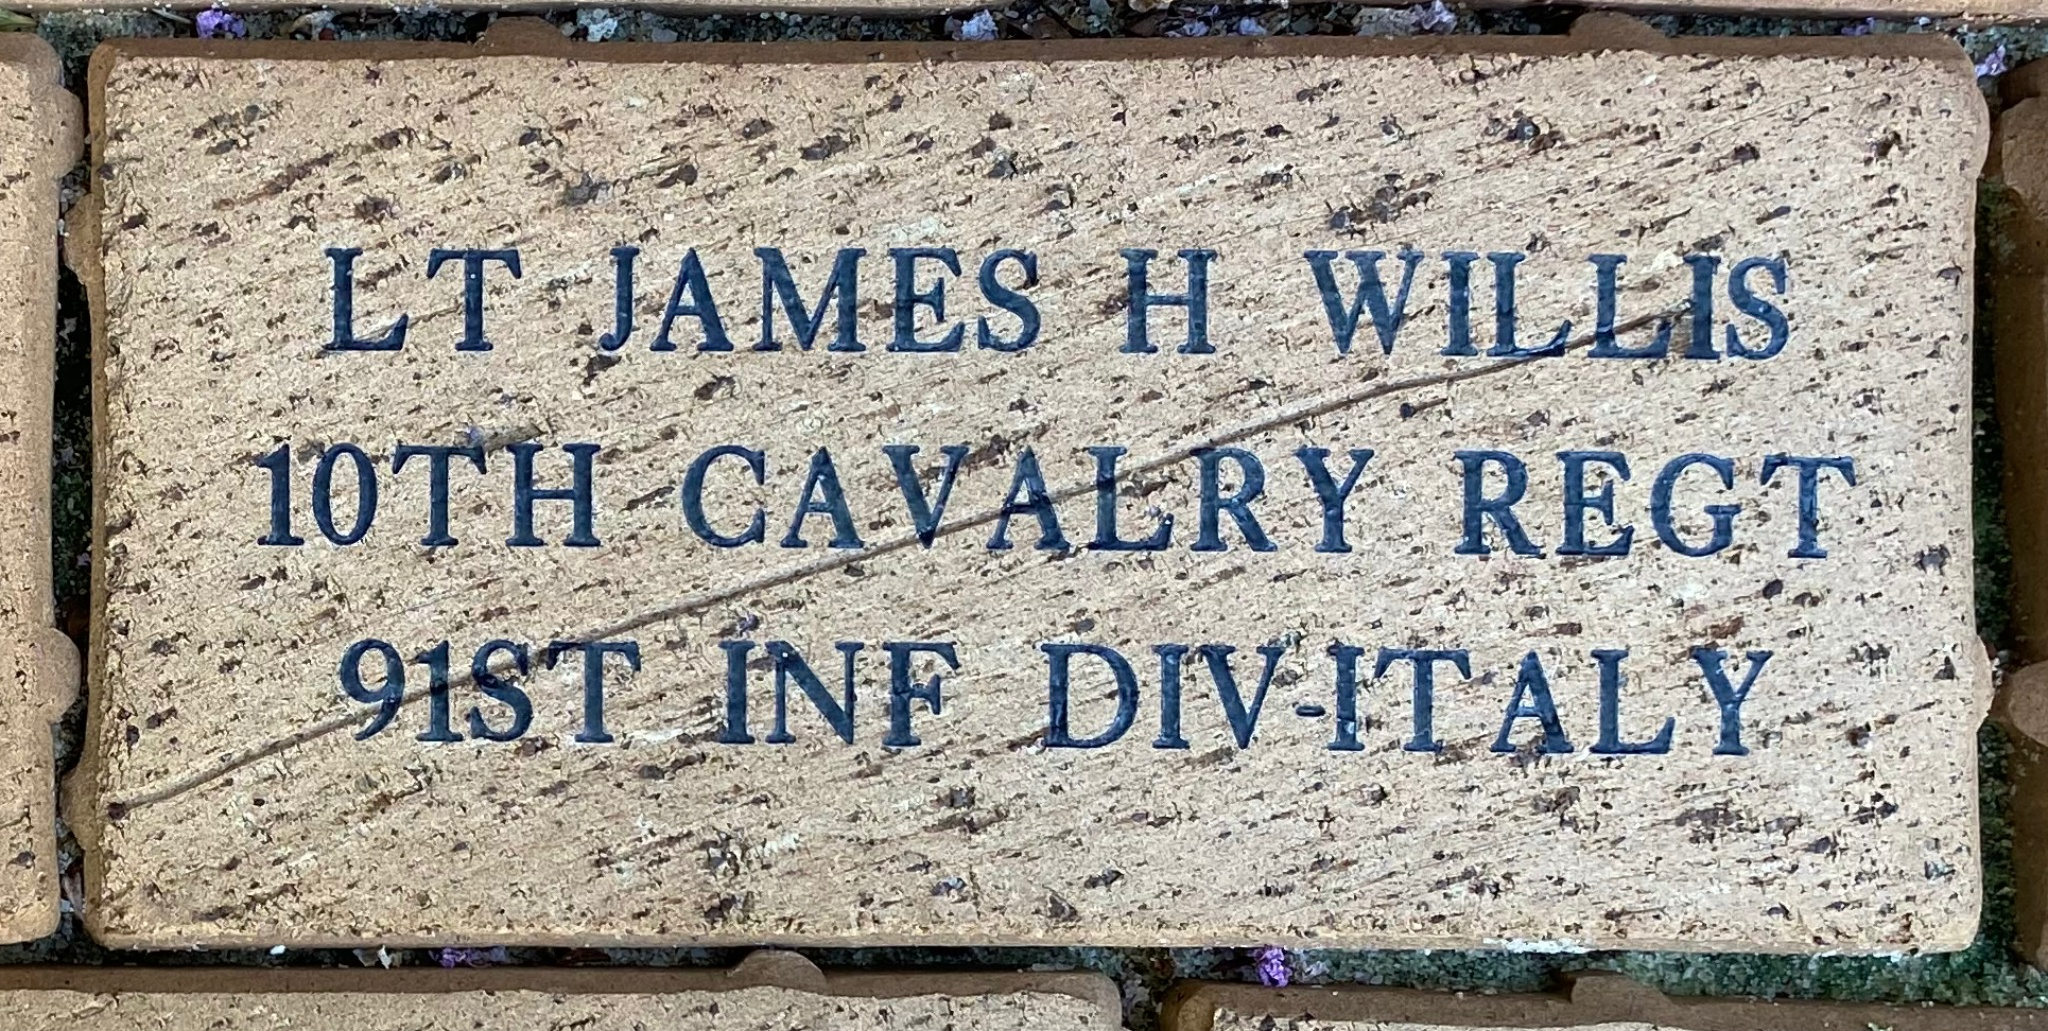 LT JAMES H WILLIS 10TH CAVALRY REGT 91ST INF DIV-ITALY